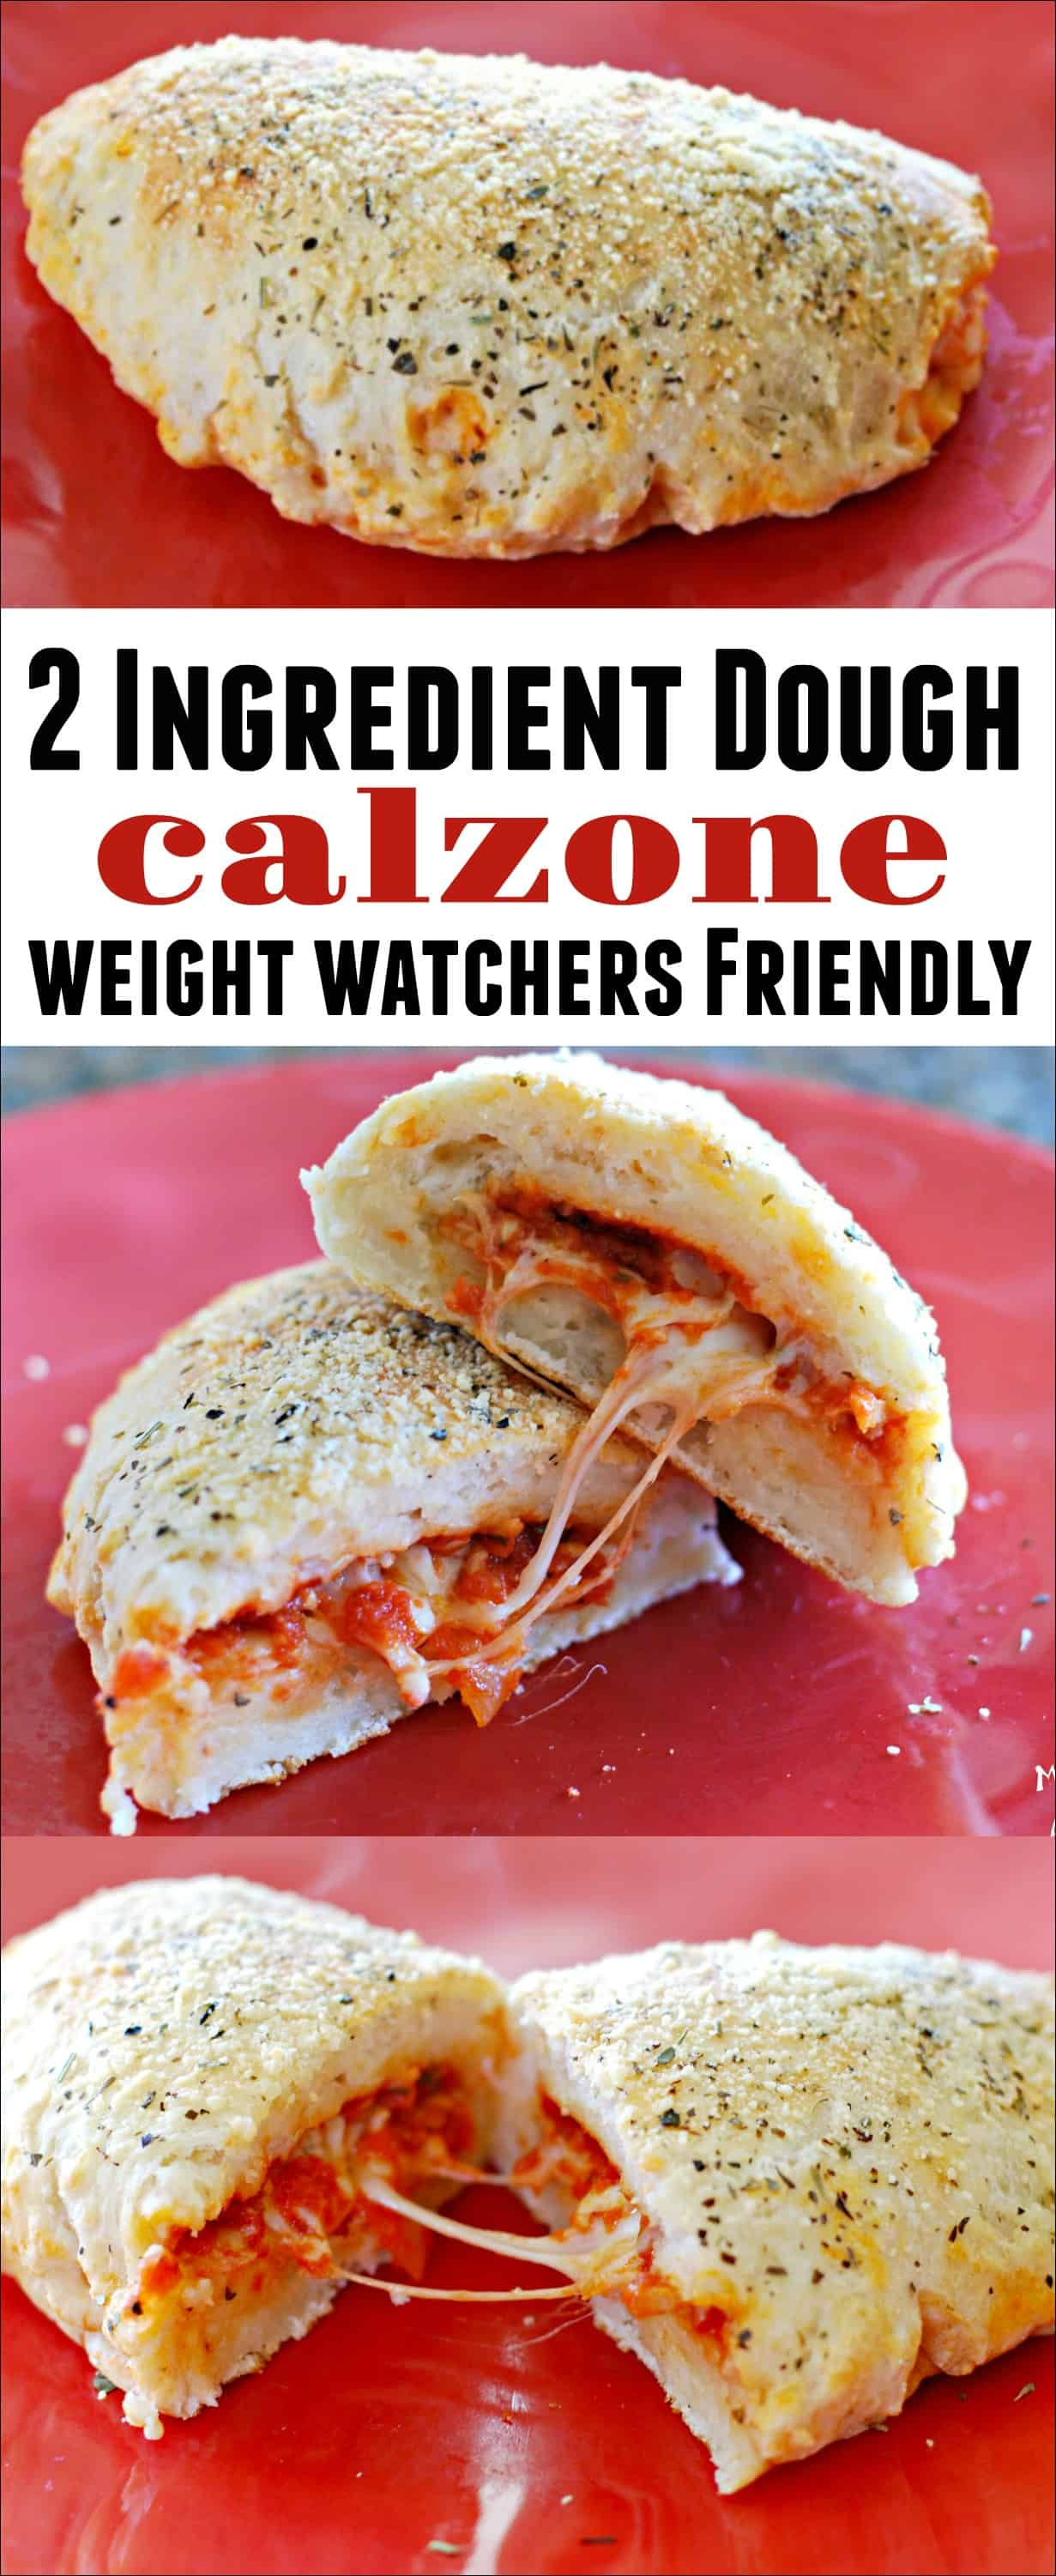 2 Ingredient Dough Calzone - Weight Watchers friendly! This large calzone is easy to make and is 8 Freestyle Points. This Weight Watchers recipe is filling and delicious! #Weightwatchers #2ingredientdough #freestylerecipe